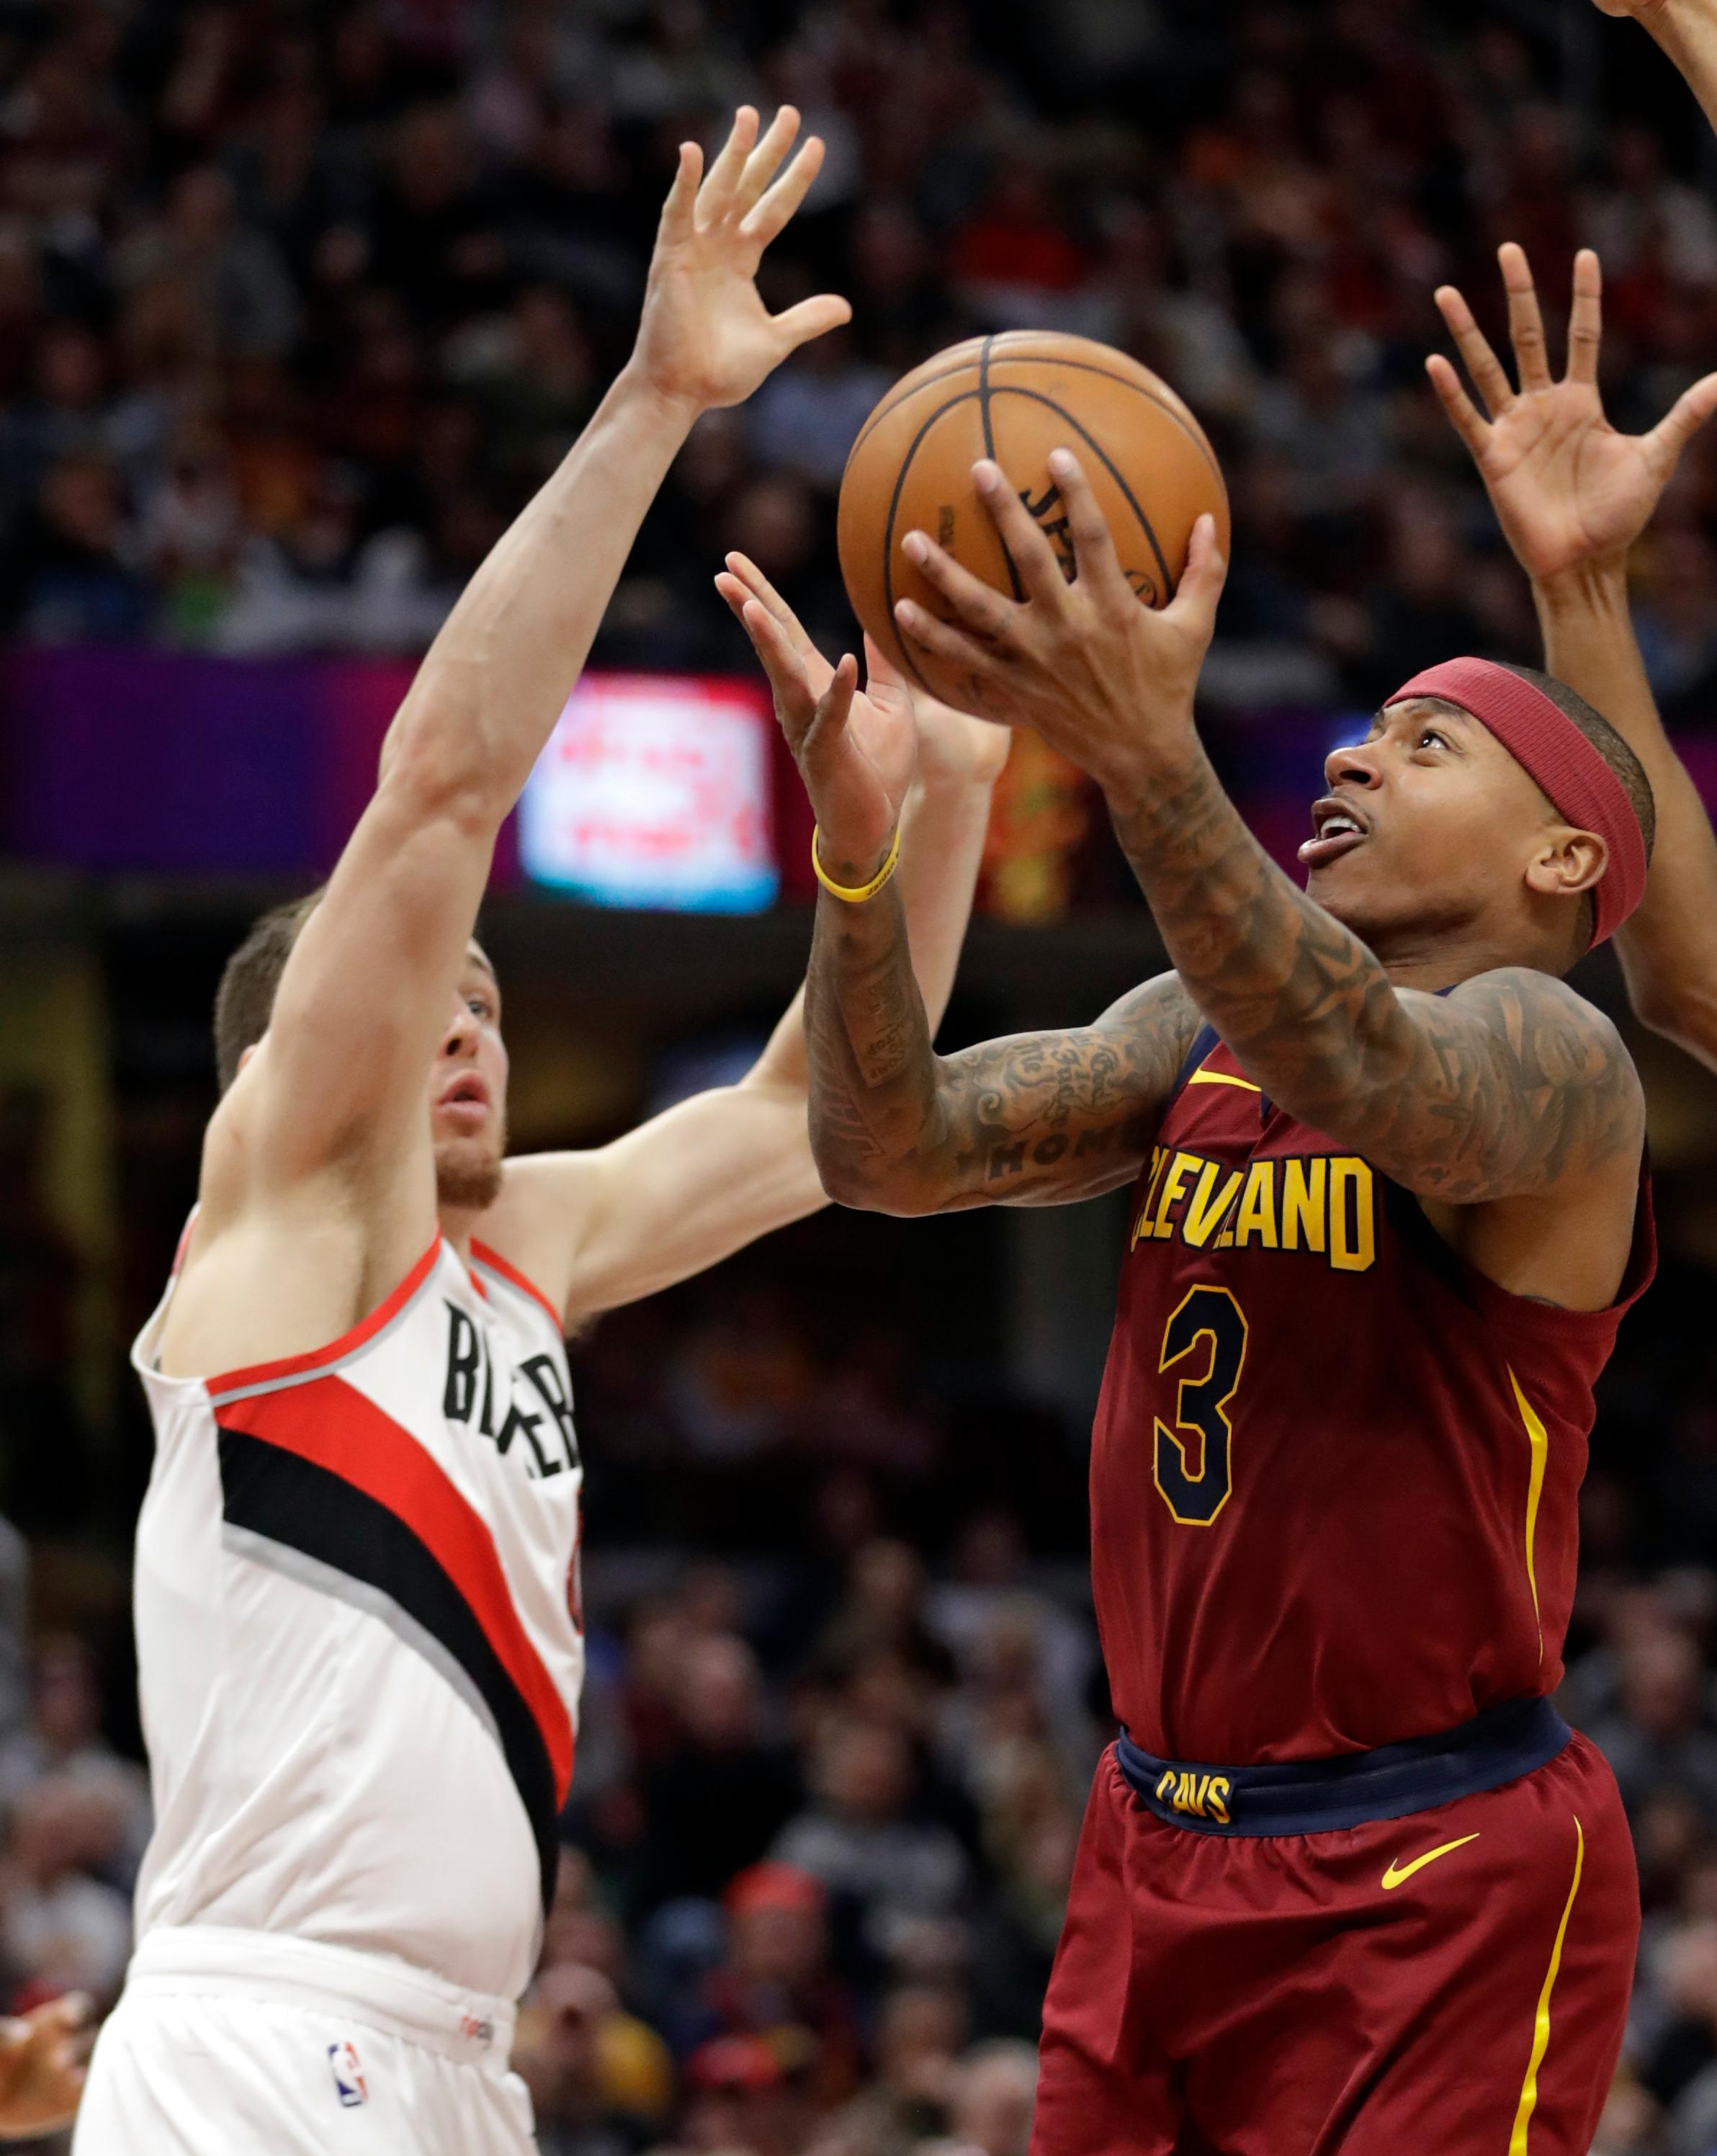 Cleveland Cavaliers' Isaiah Thomas (3) drives to the basket against Portland Trail Blazers' Pat Connaughton (5) in the second half of an NBA basketball game, Tuesday, Jan. 2, 2018, in Cleveland. The Cavaliers won 127-110. (AP Photo/Tony Dejak)